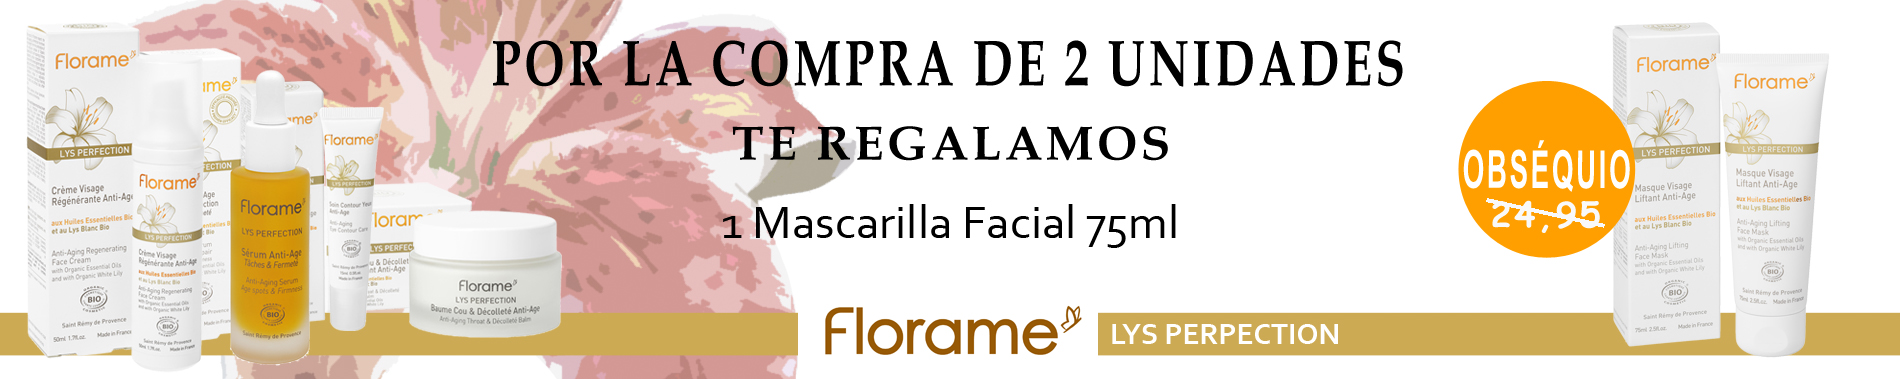 Promoción Lys Perfection Florame